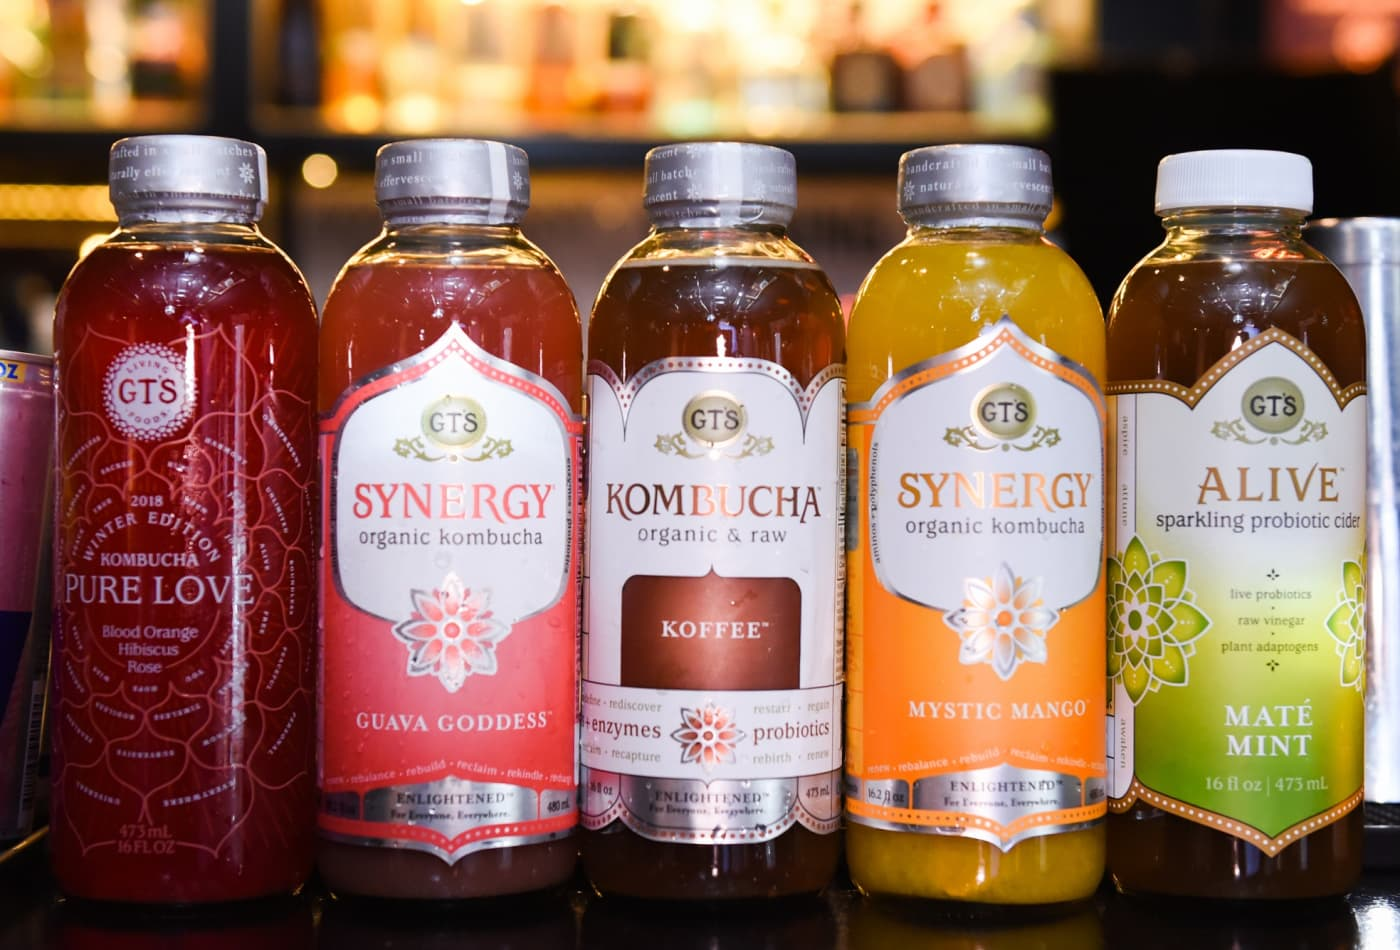 GT Dave started brewing kombucha in his bedroom and turned it into a nearly $1 billion empire